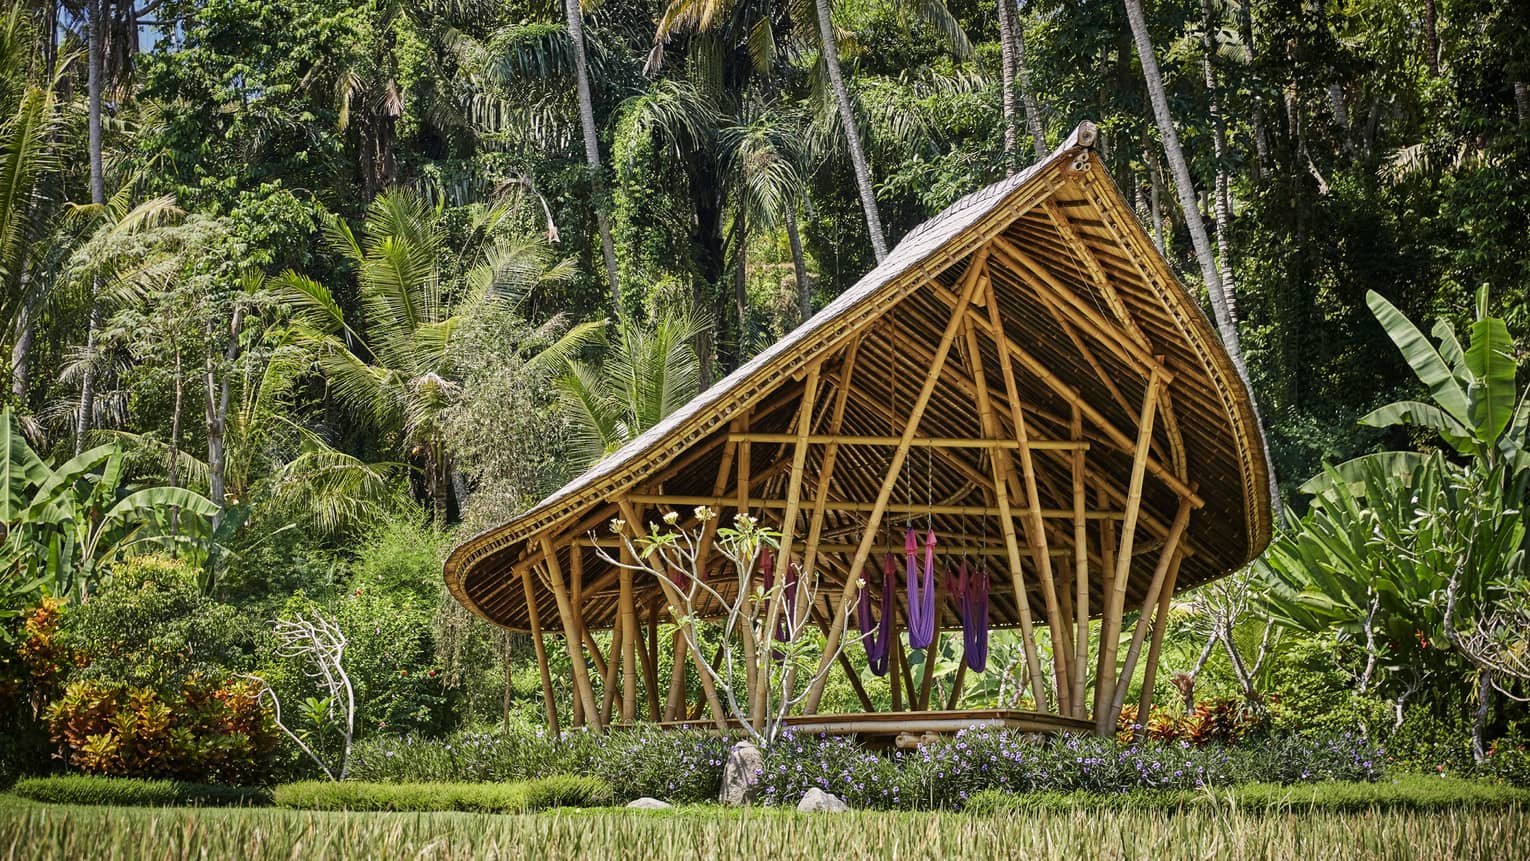 Dharma Shanti Bale meditation pavilion with modern-looking wood structure, colourful hammocks in tropical forest